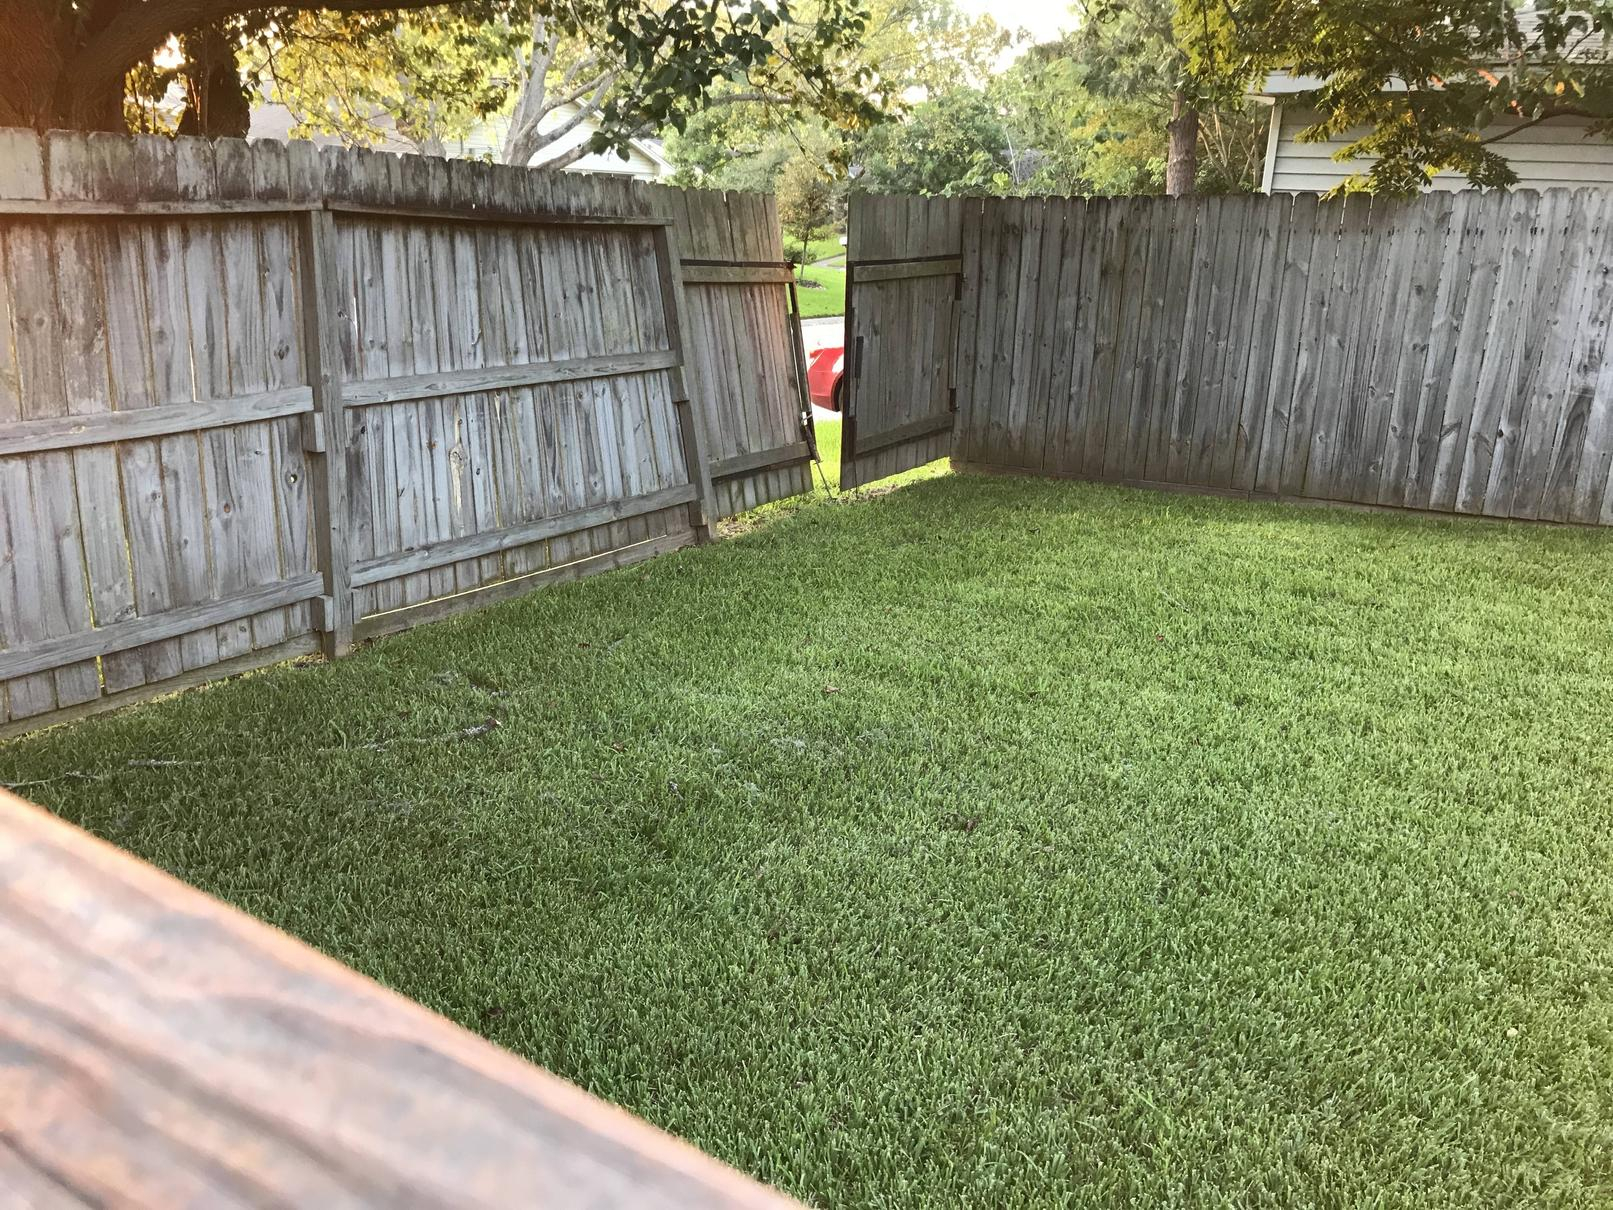 How Should I Repair A Fence Thats Leaning Due To Soft Soil for Backyard Fence Repair